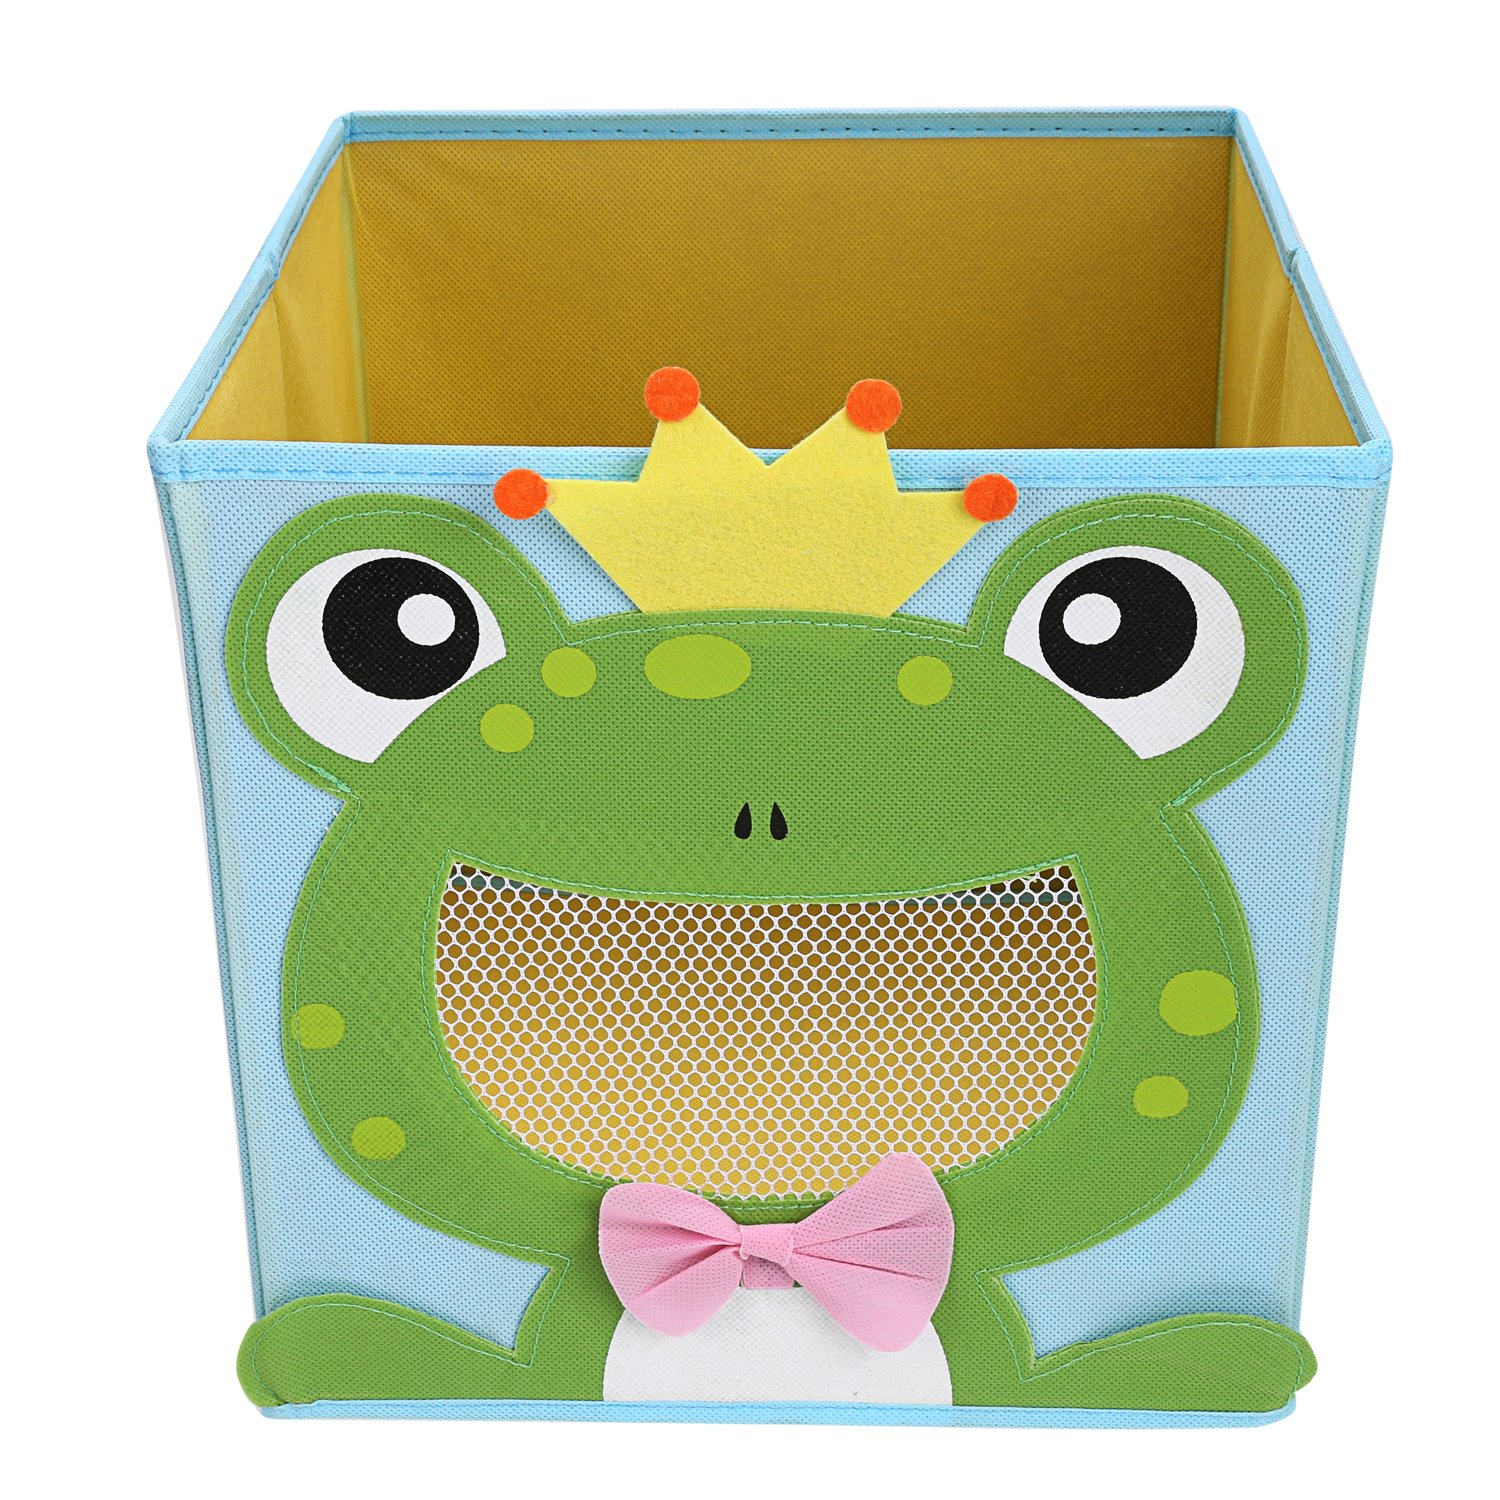 Square Collapsible Canvas Storage Box Foldable Kids Toys: Amazon.com : Cute Collapsible Storage Bins W/ View Window